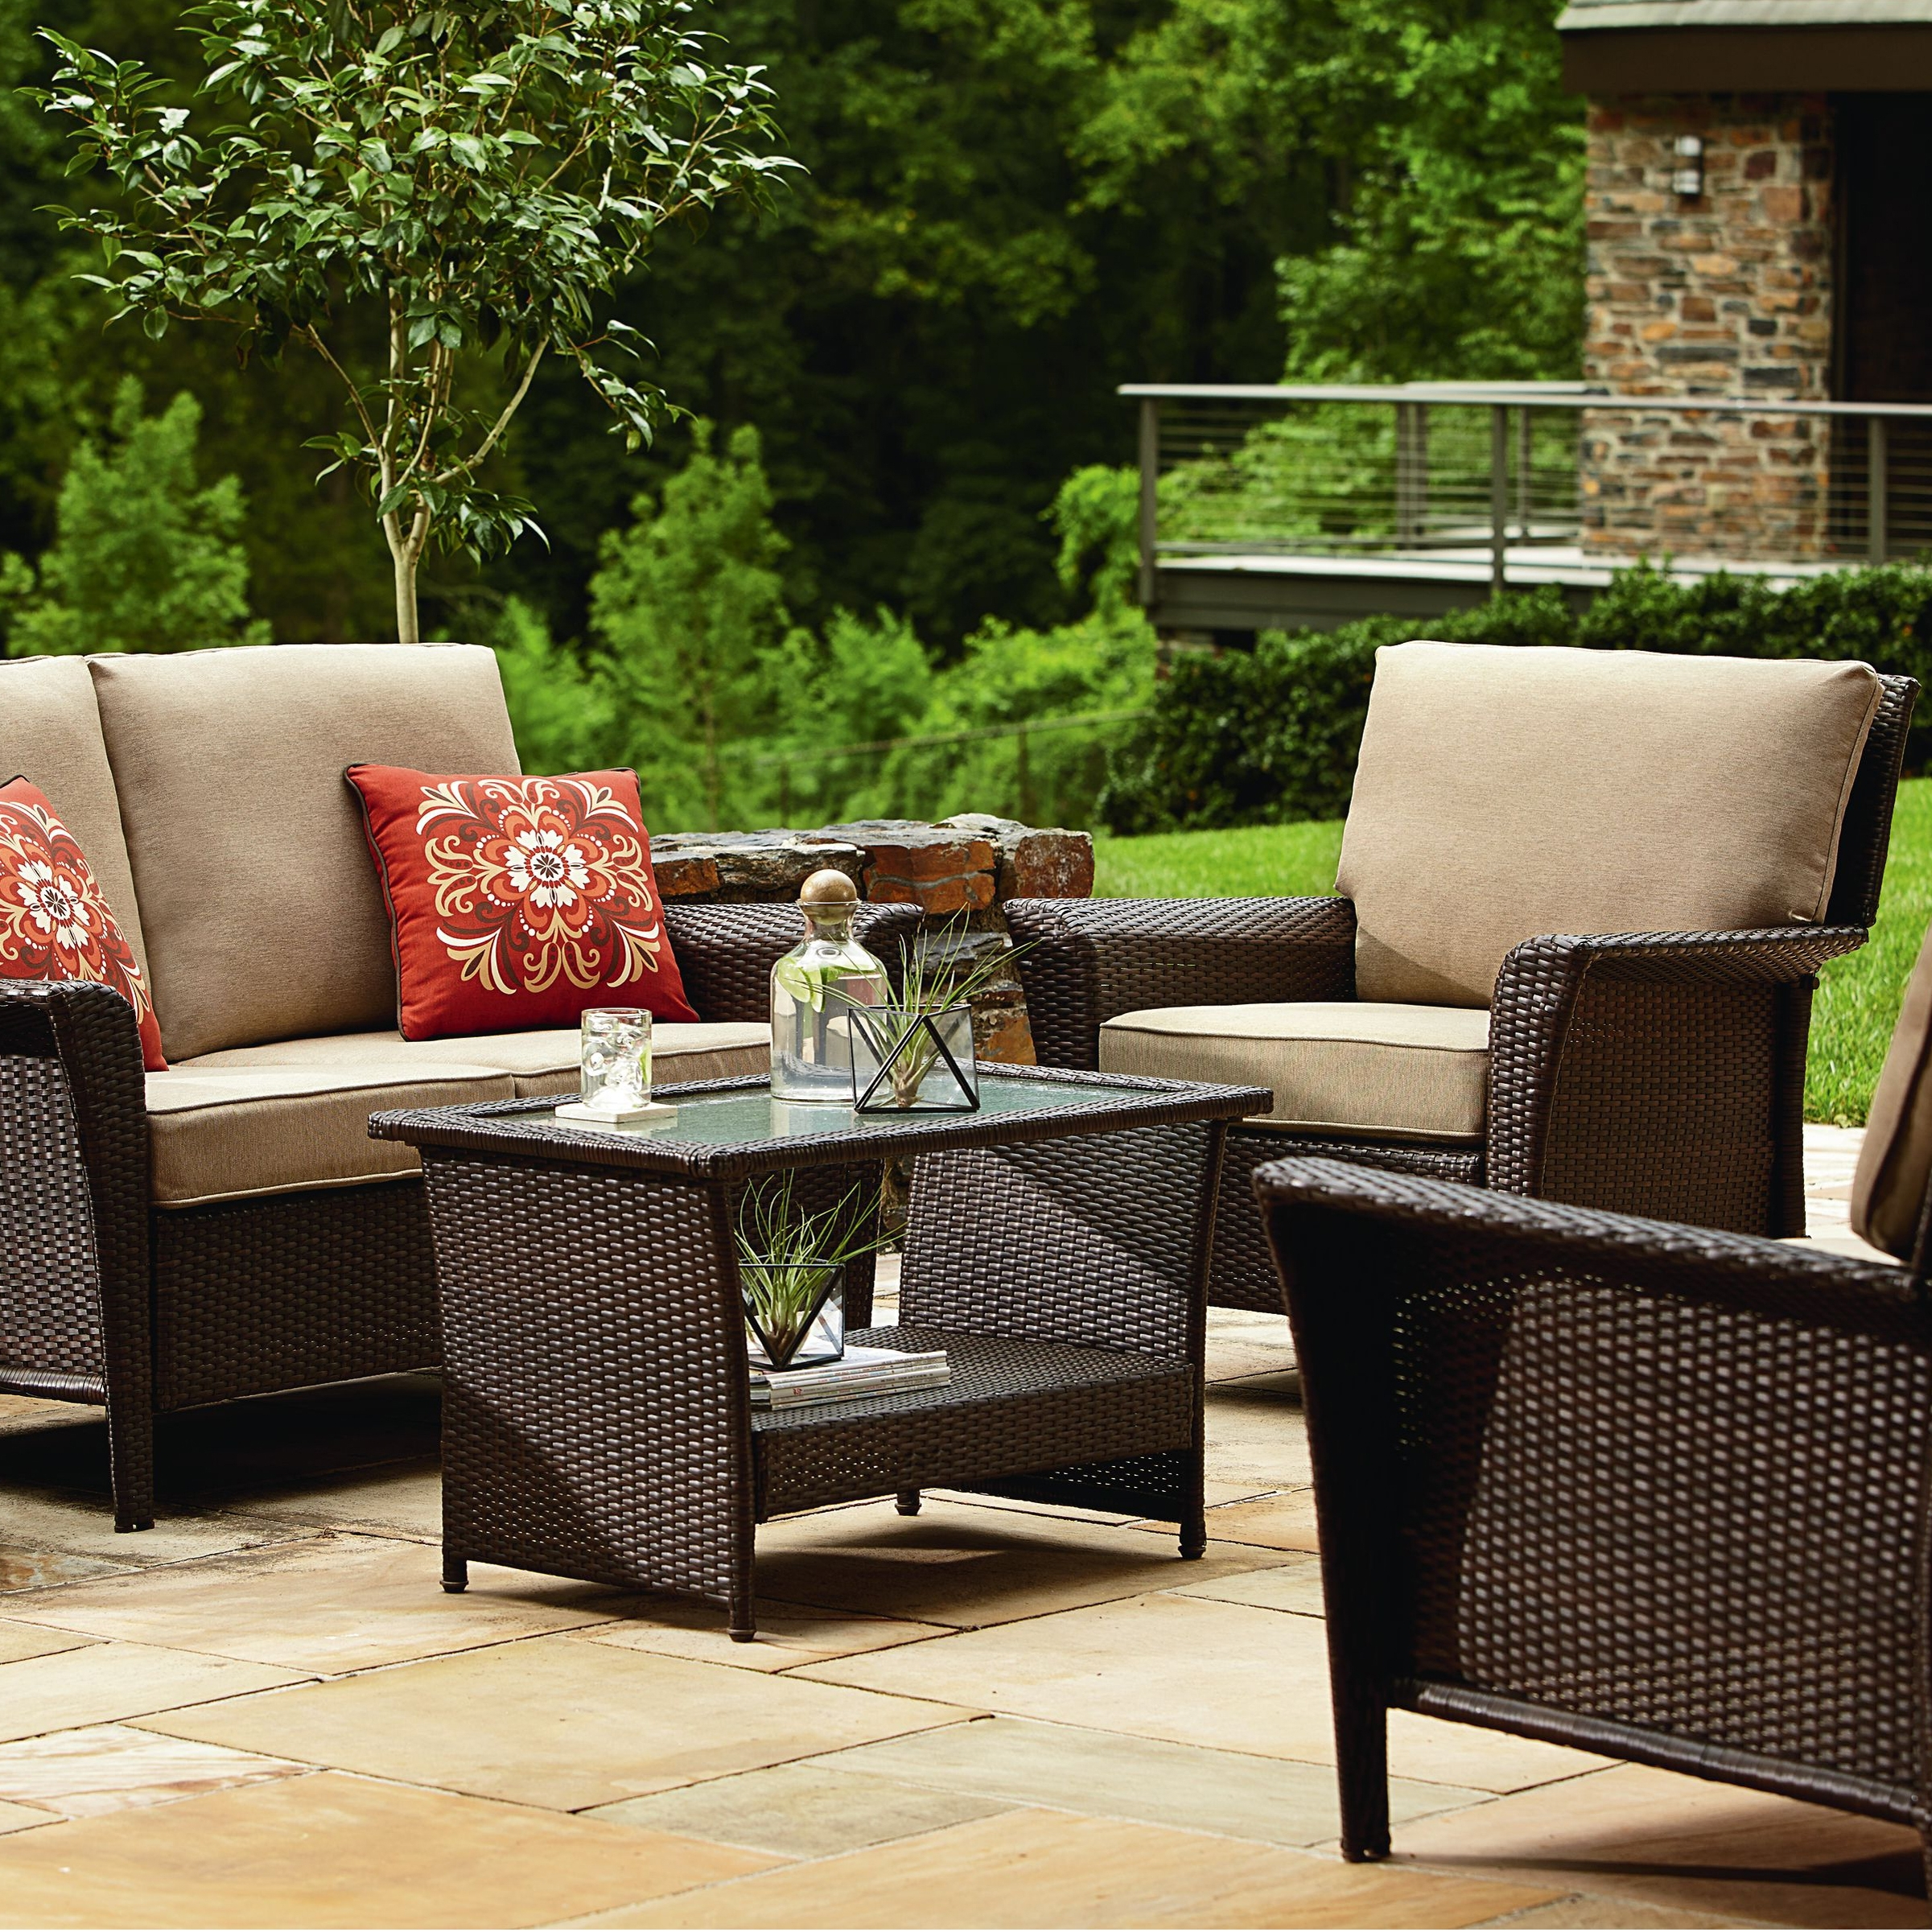 Patio Conversation Sets For Small Spaces With Recent Awesome Sears Patio Table View With Family Room Small Room Sears (View 5 of 20)